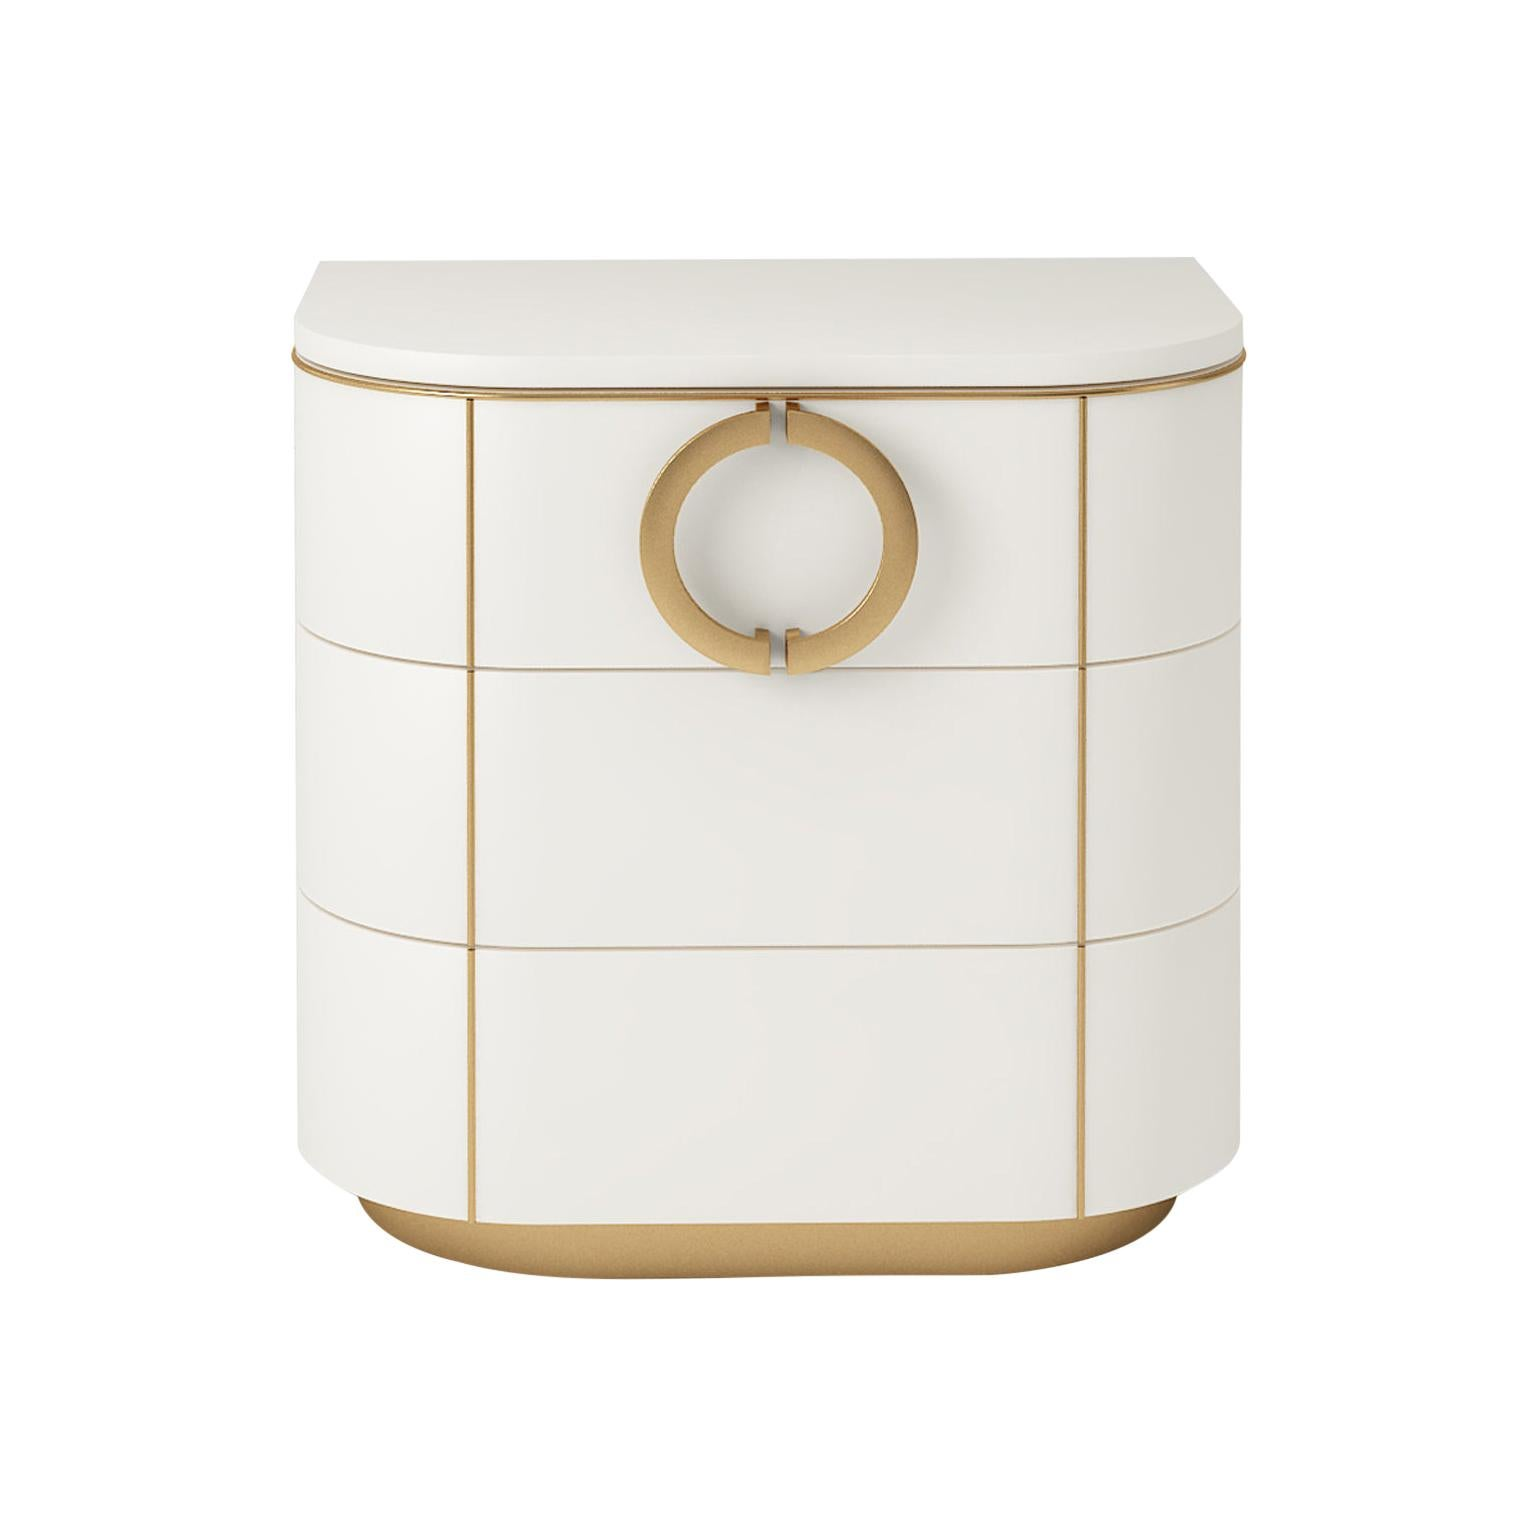 Isabella Costantini, Italy, Maddalena Nightstand with Three Drawers